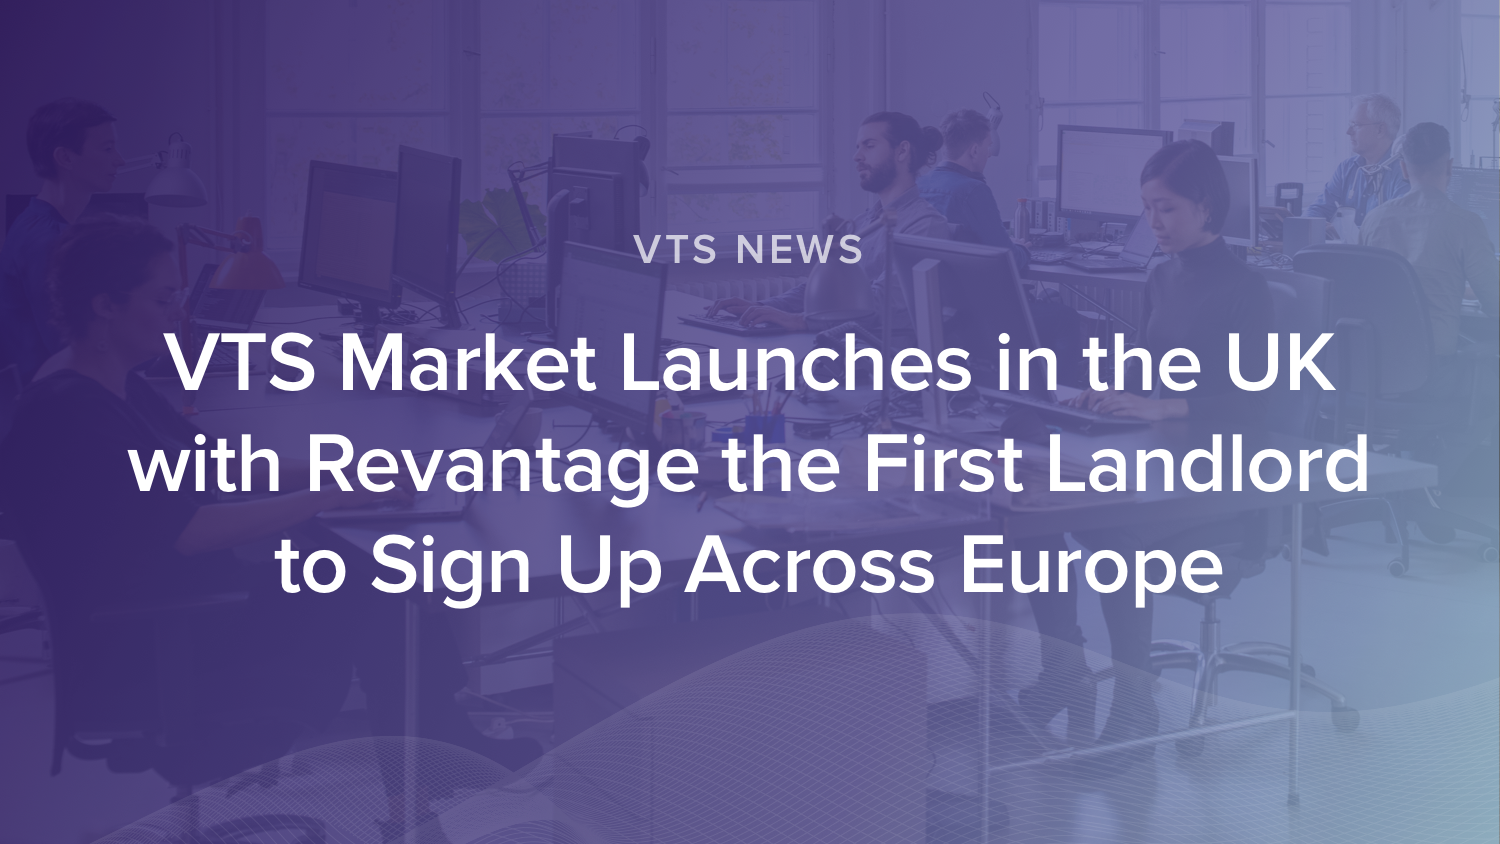 VTS Market Launches in the UK with Revantage the First Landlord to Sign Up Across Europe